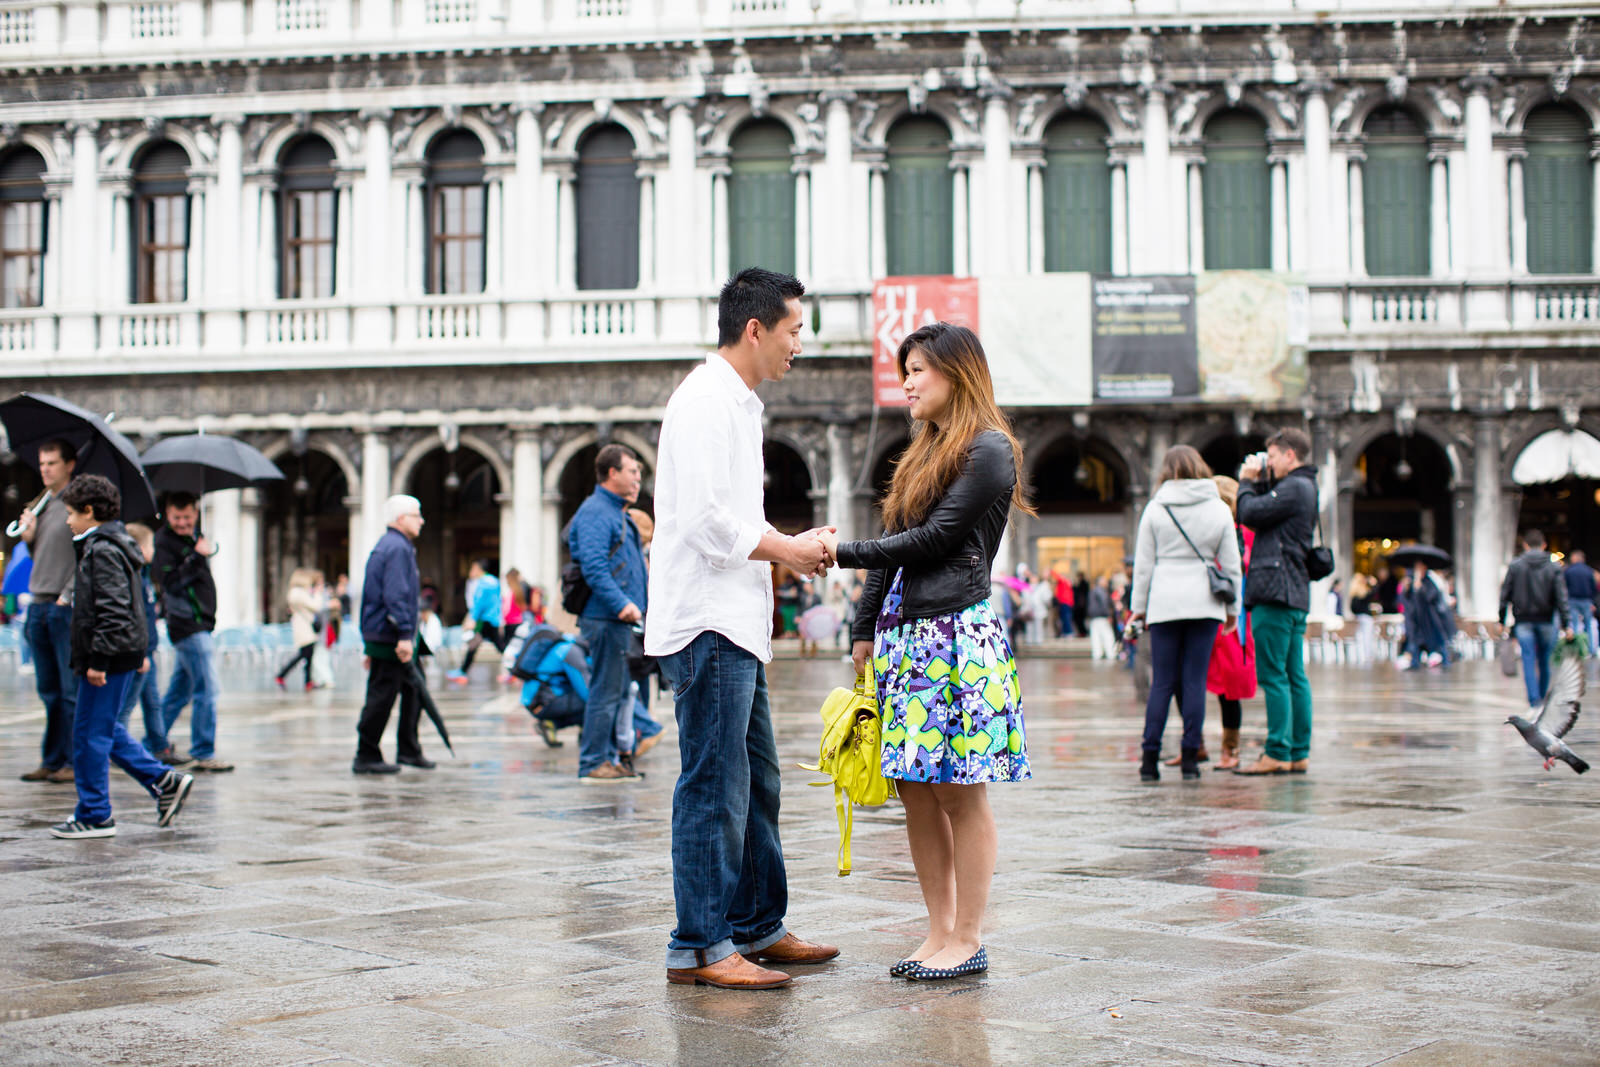 Marriage Proposal Venice Italy | Engagement photography Venice wedding proposal in one of most romantic city in the world,What a wonderful surprise for her.